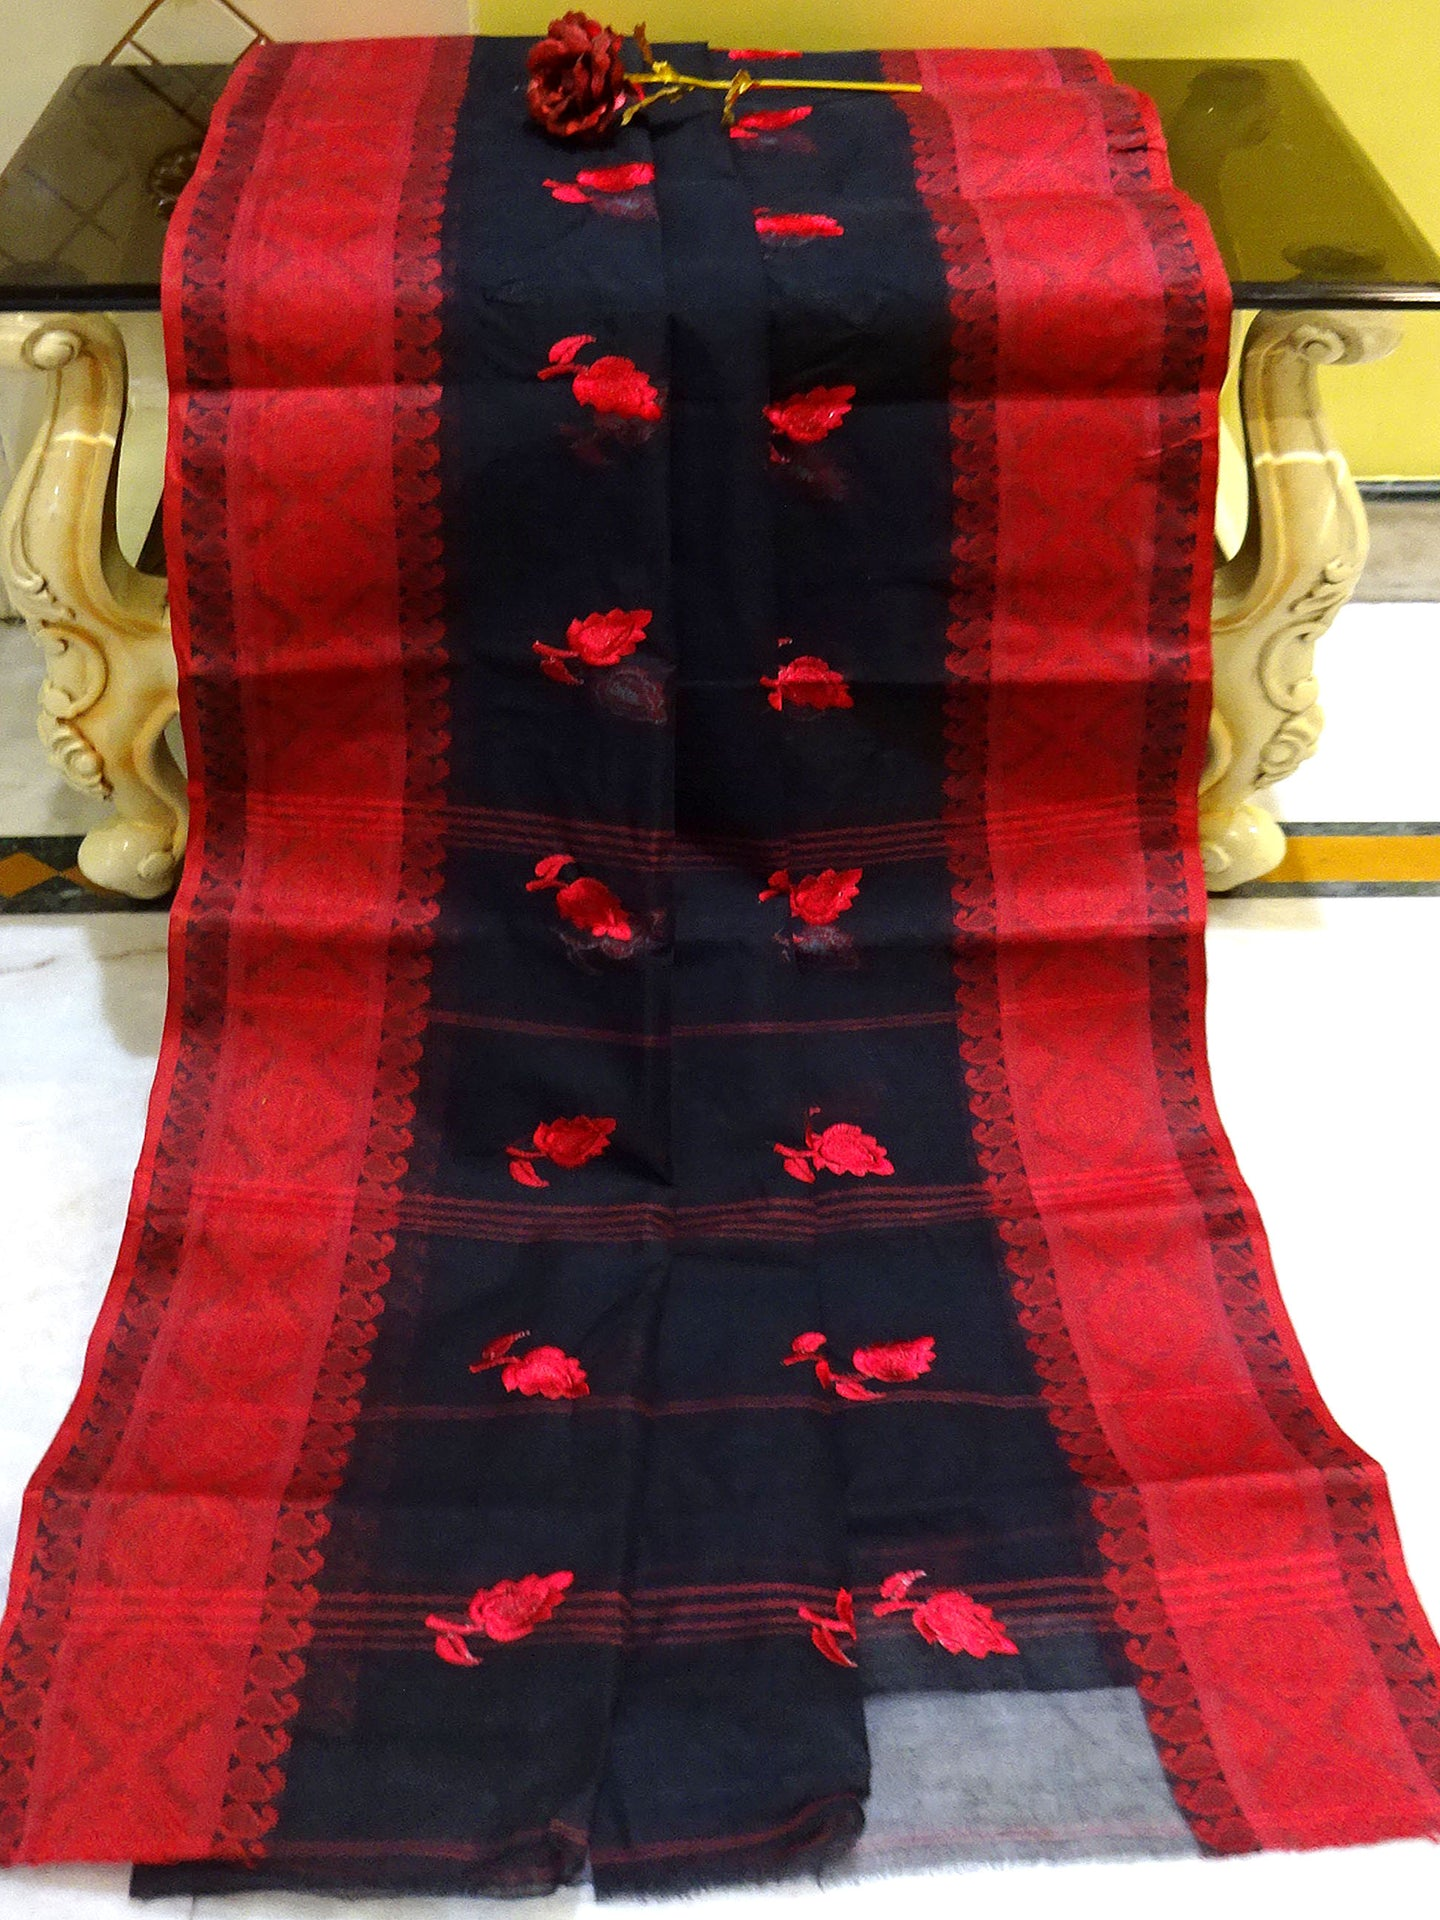 Bengal Handloom Cotton Saree with Embroidery Work in Black and Red from Bengal Looms India